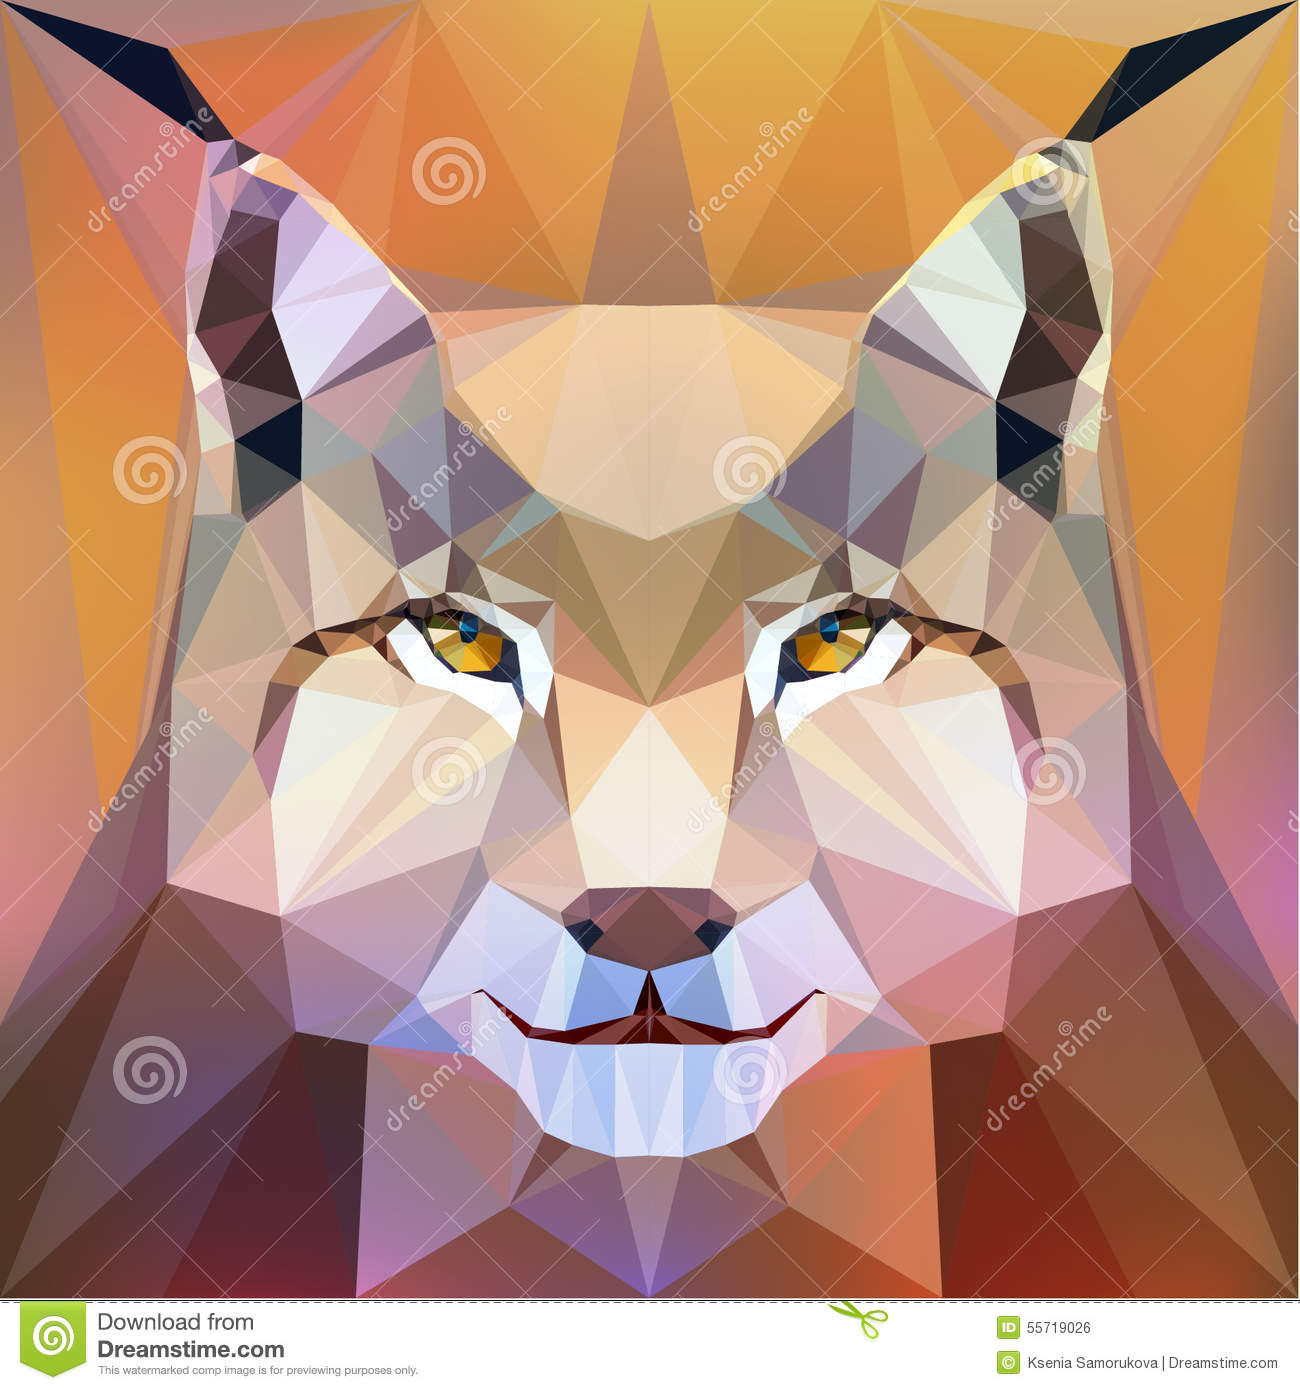 Face of a lynx stock vector  Illustration of triangle - 55719026